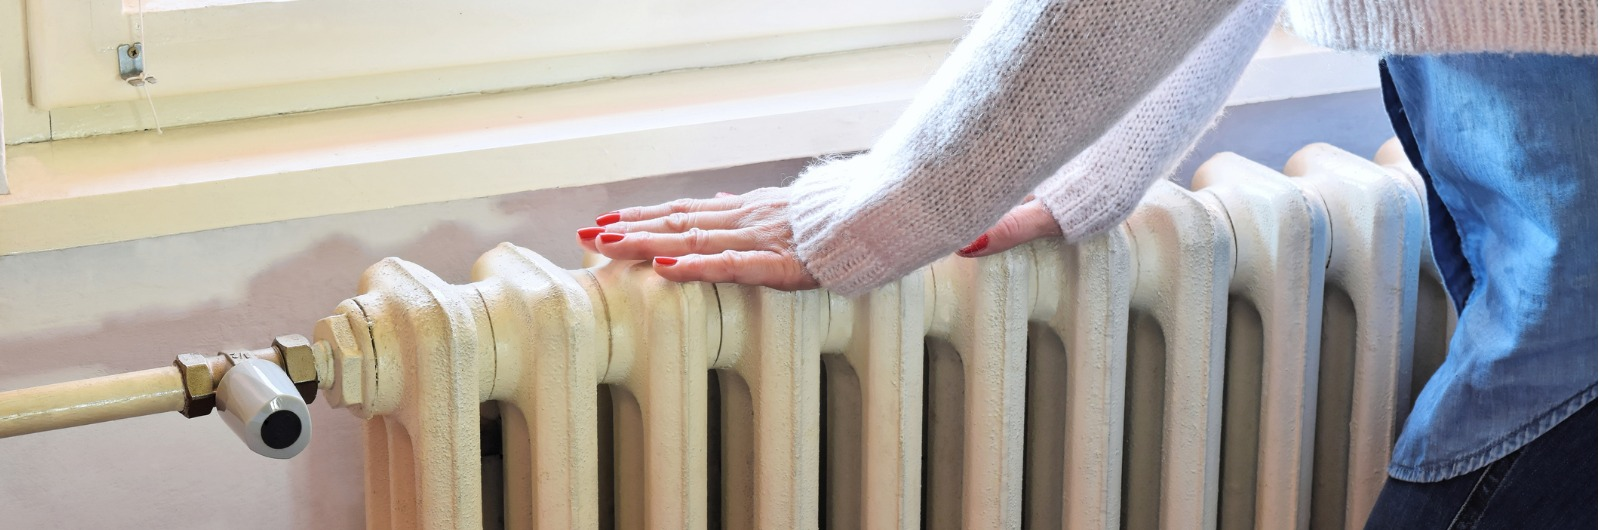 woman's hands on a radiator